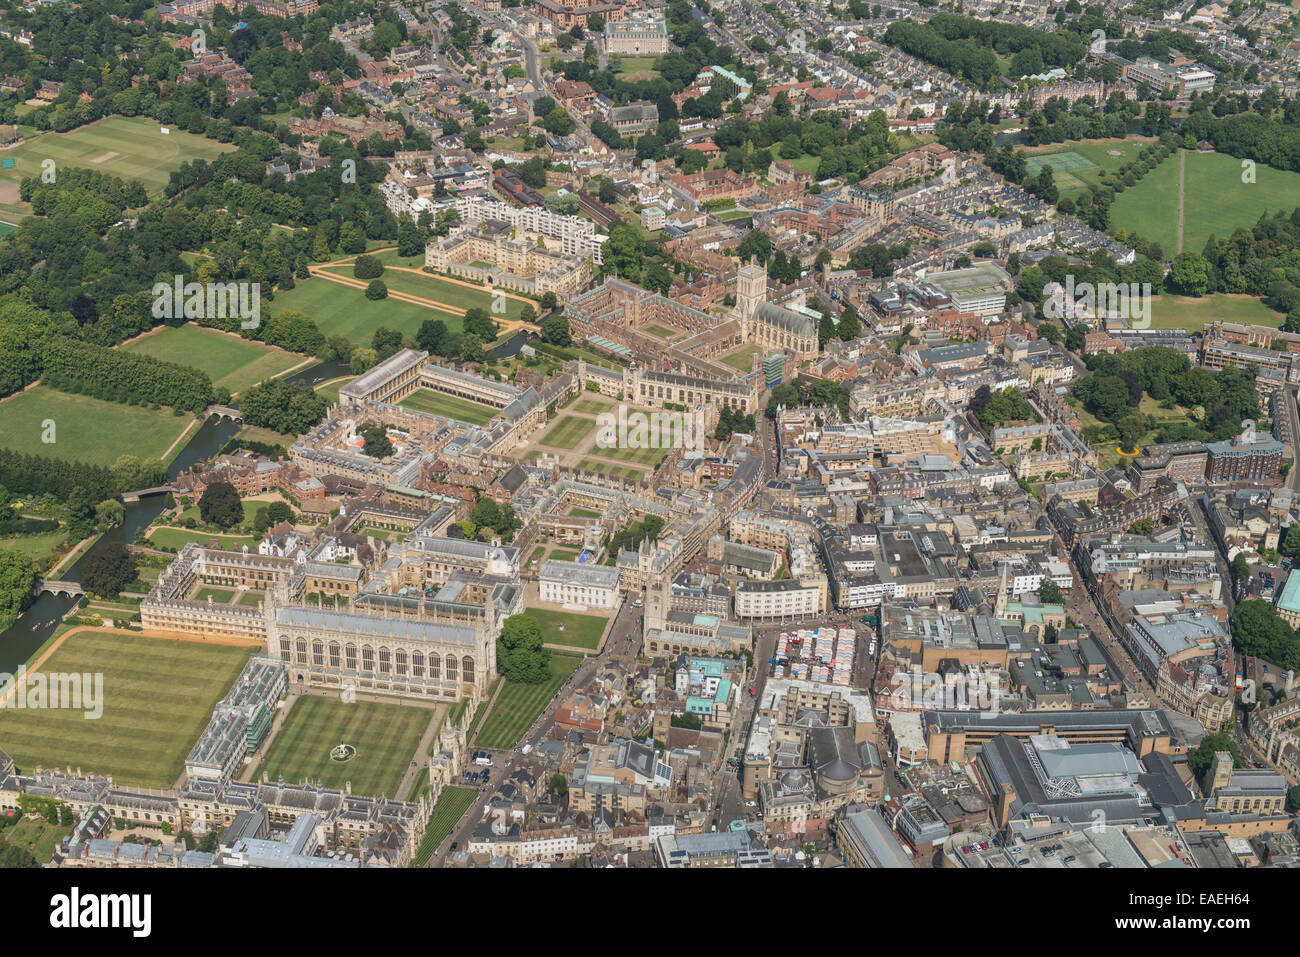 An aerial view of Cambridge showing some of the city centre and University buildings - Stock Image